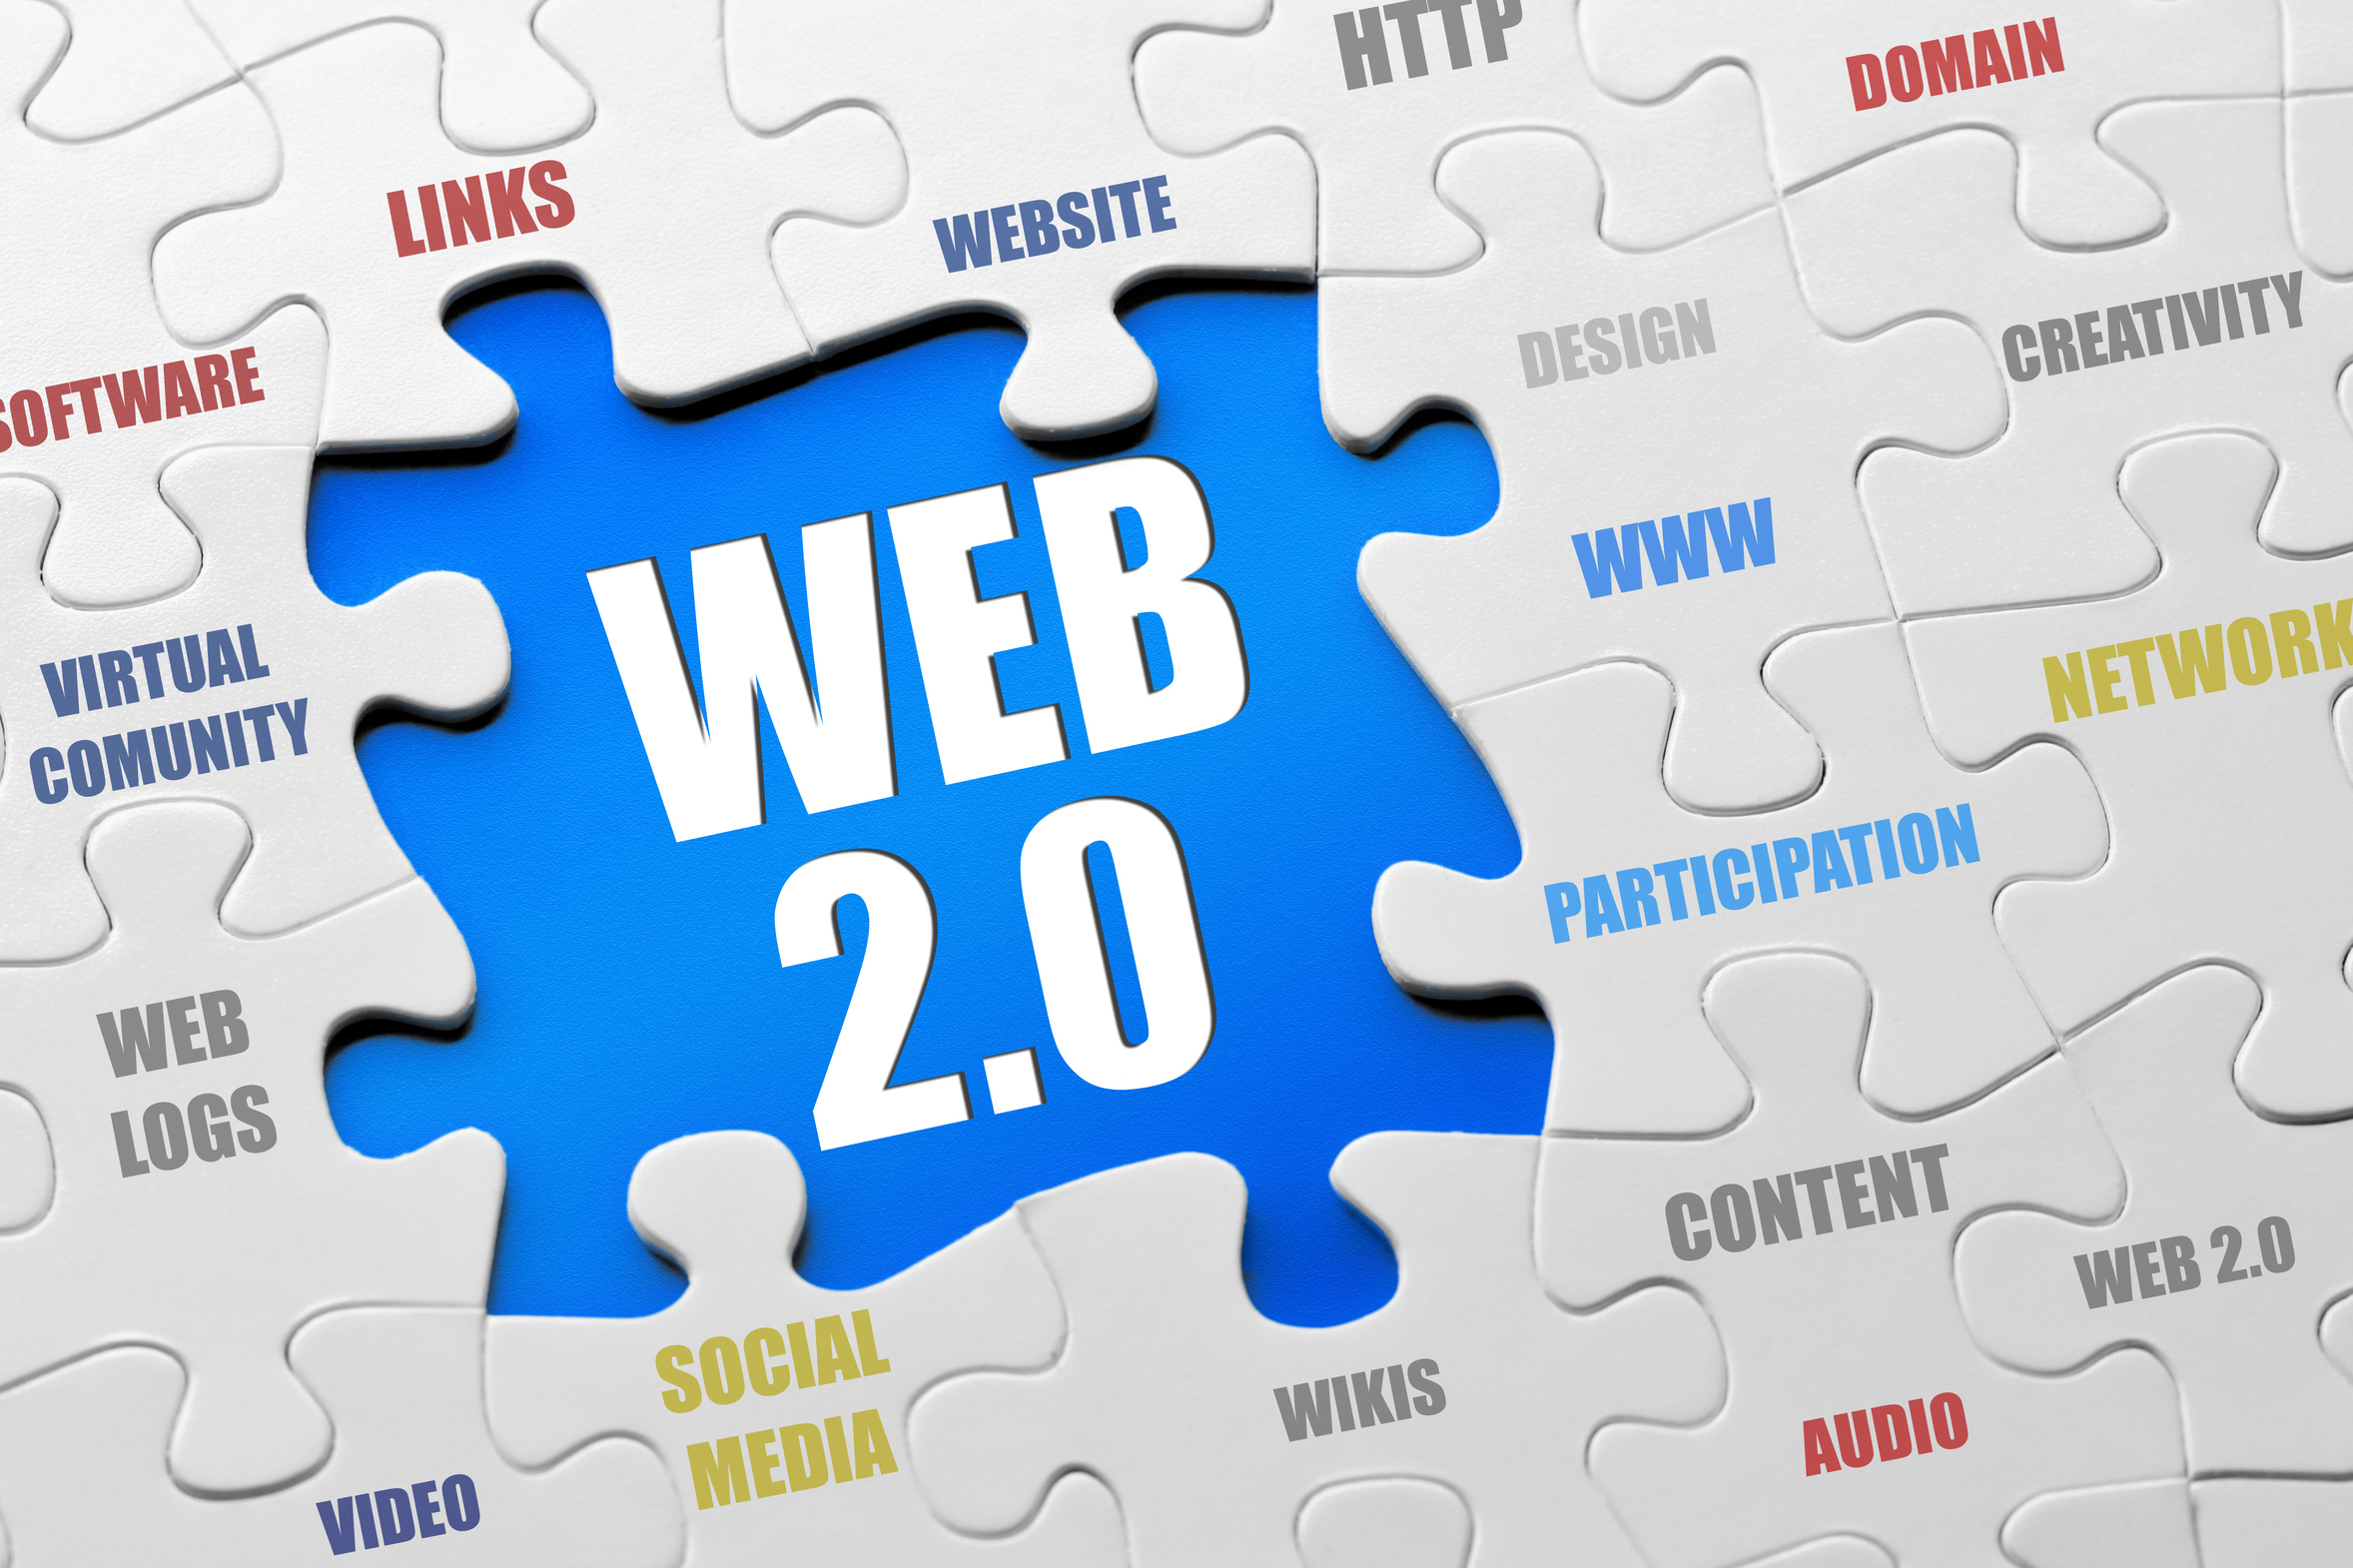 5 Web 2.0 Links Daily for 30 Days